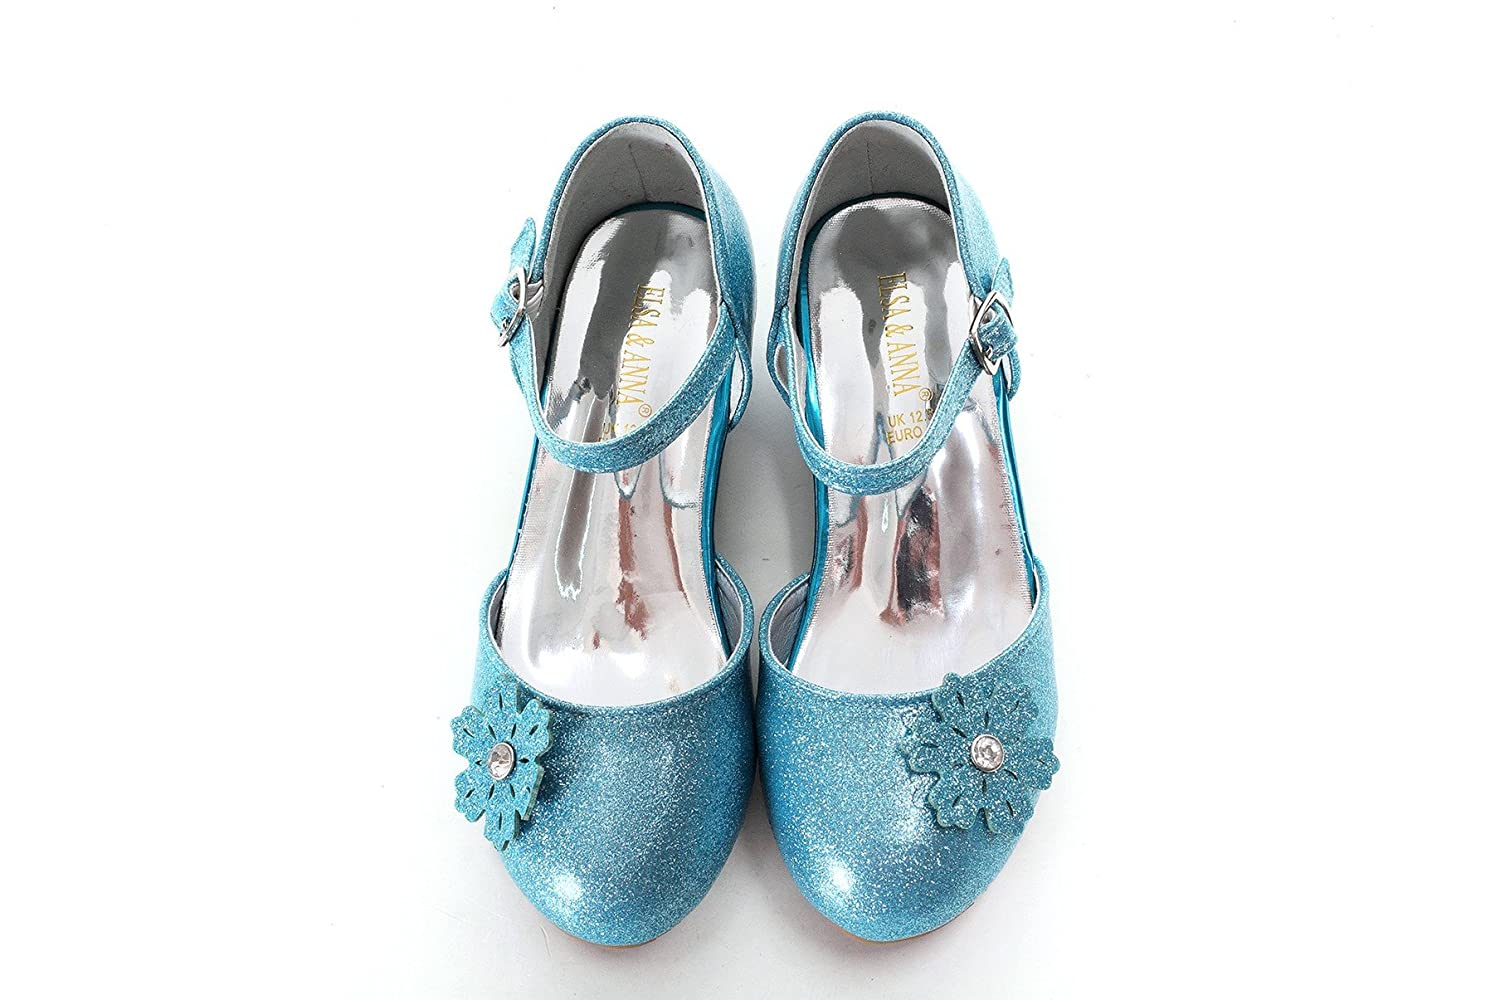 UK ELSA & ANNA® Girls Top Quality Latest Design Princess Snow Queen Wedged Party Shoes Sandals BLU11-SH UK1stChoice-Zone